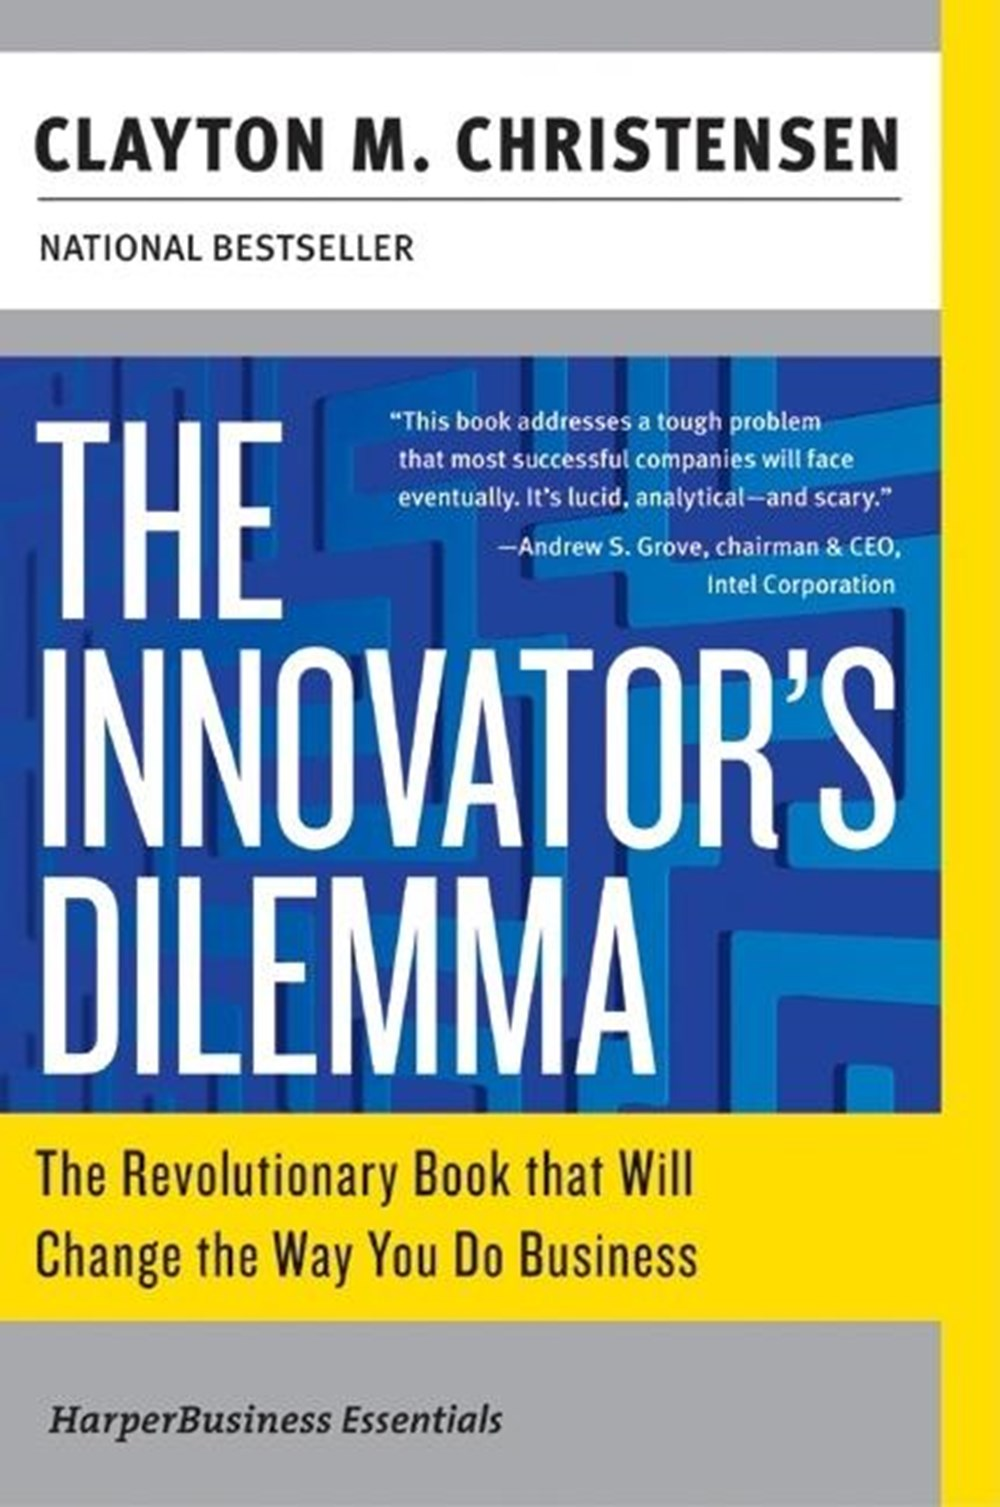 Innovator's Dilemma The Revolutionary Book That Will Change the Way You Do Business